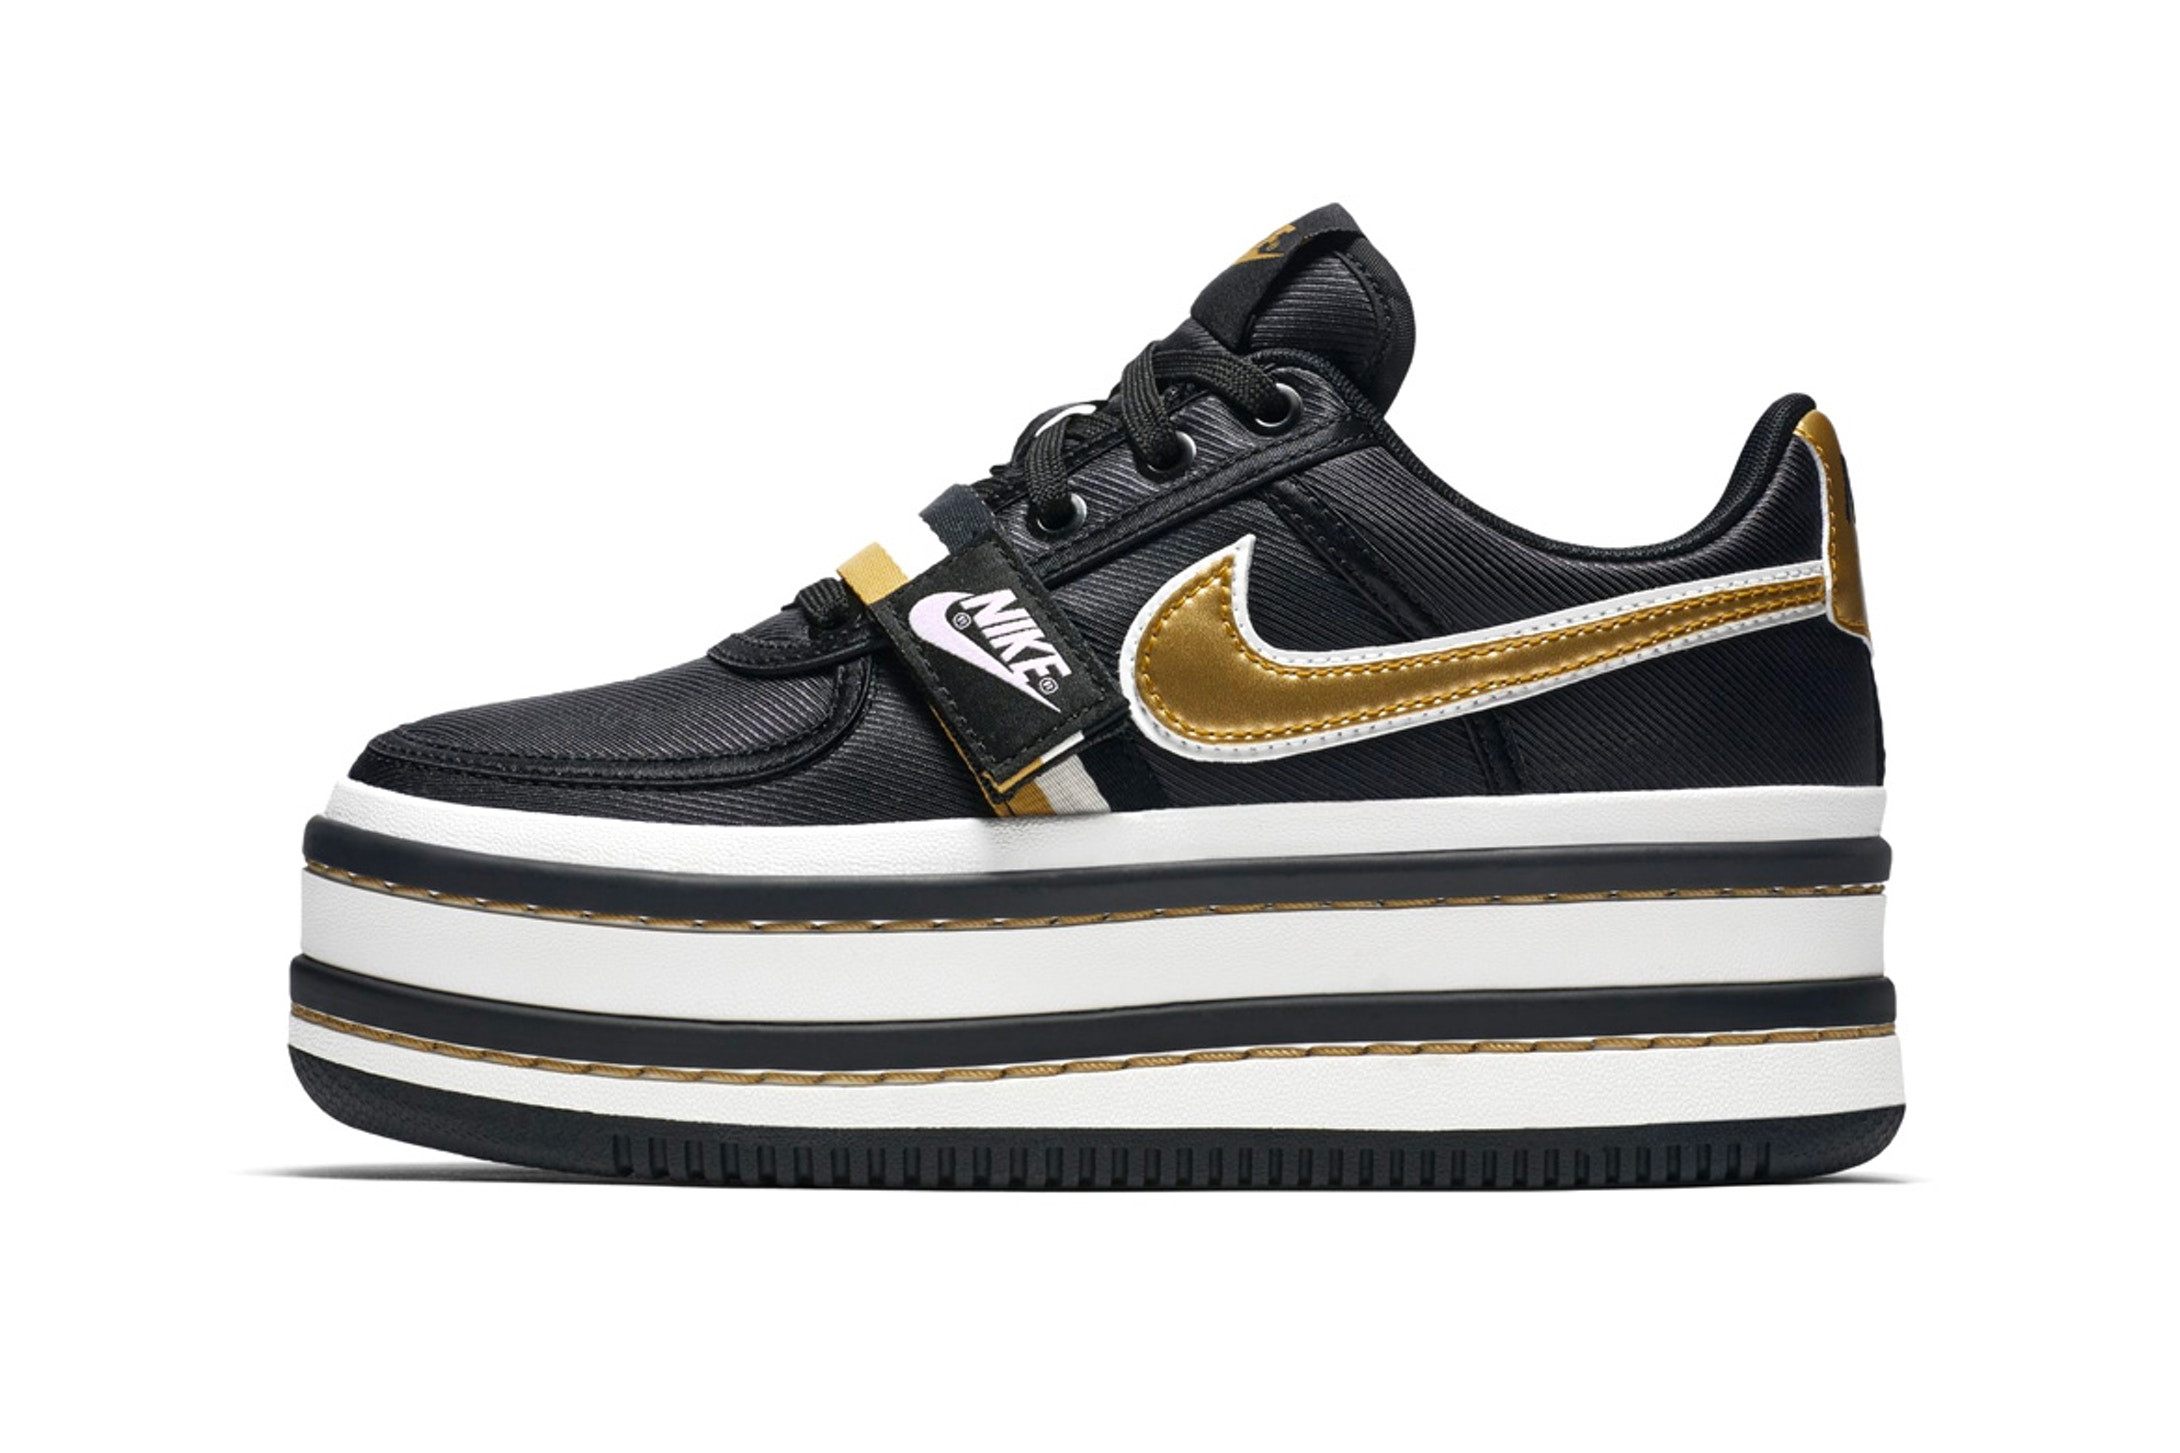 san francisco 342b7 14219 nike platform sneakers gold and blue shoes